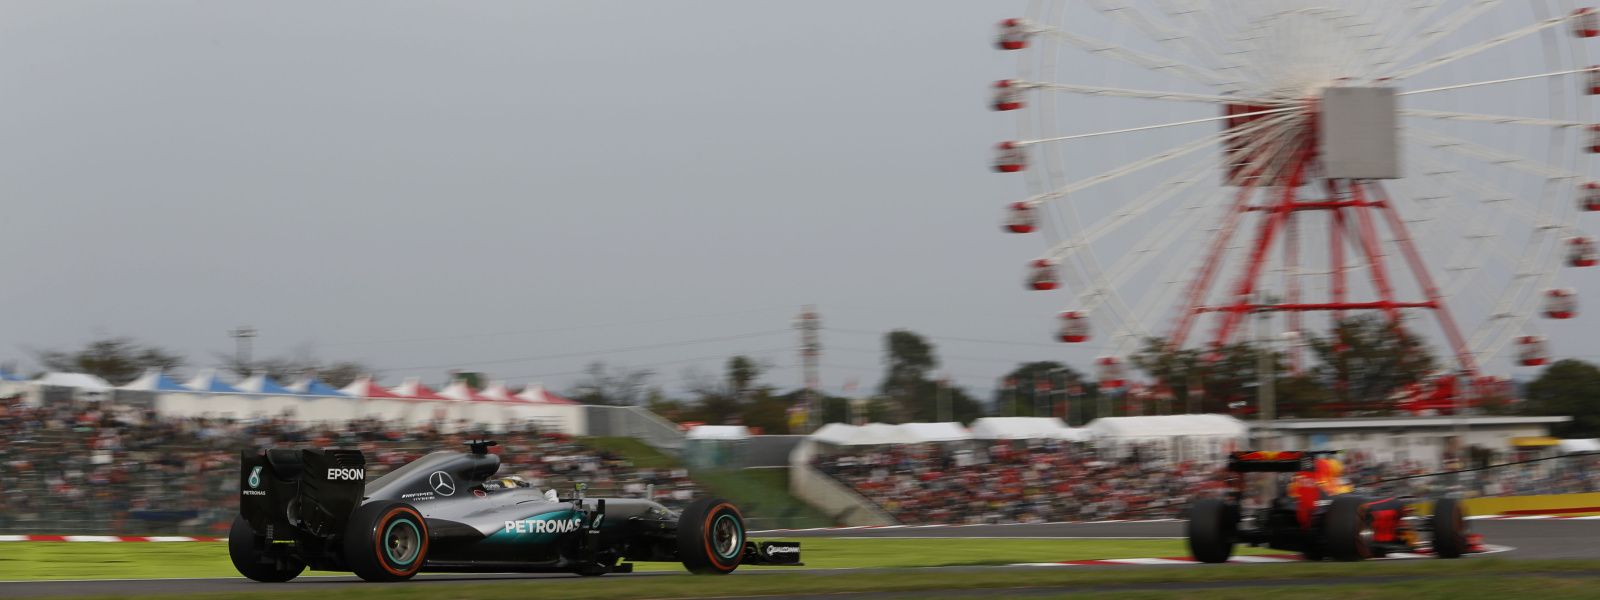 Motorsports: FIA Formula One World Championship 2016, Grand Prix of Japan,  #44 Lewis Hamilton (GBR, Mercedes AMG Petronas Formula One Team),  *** Local Caption *** +++ www.hoch-zwei.net +++ copyright: HOCH ZWEI +++